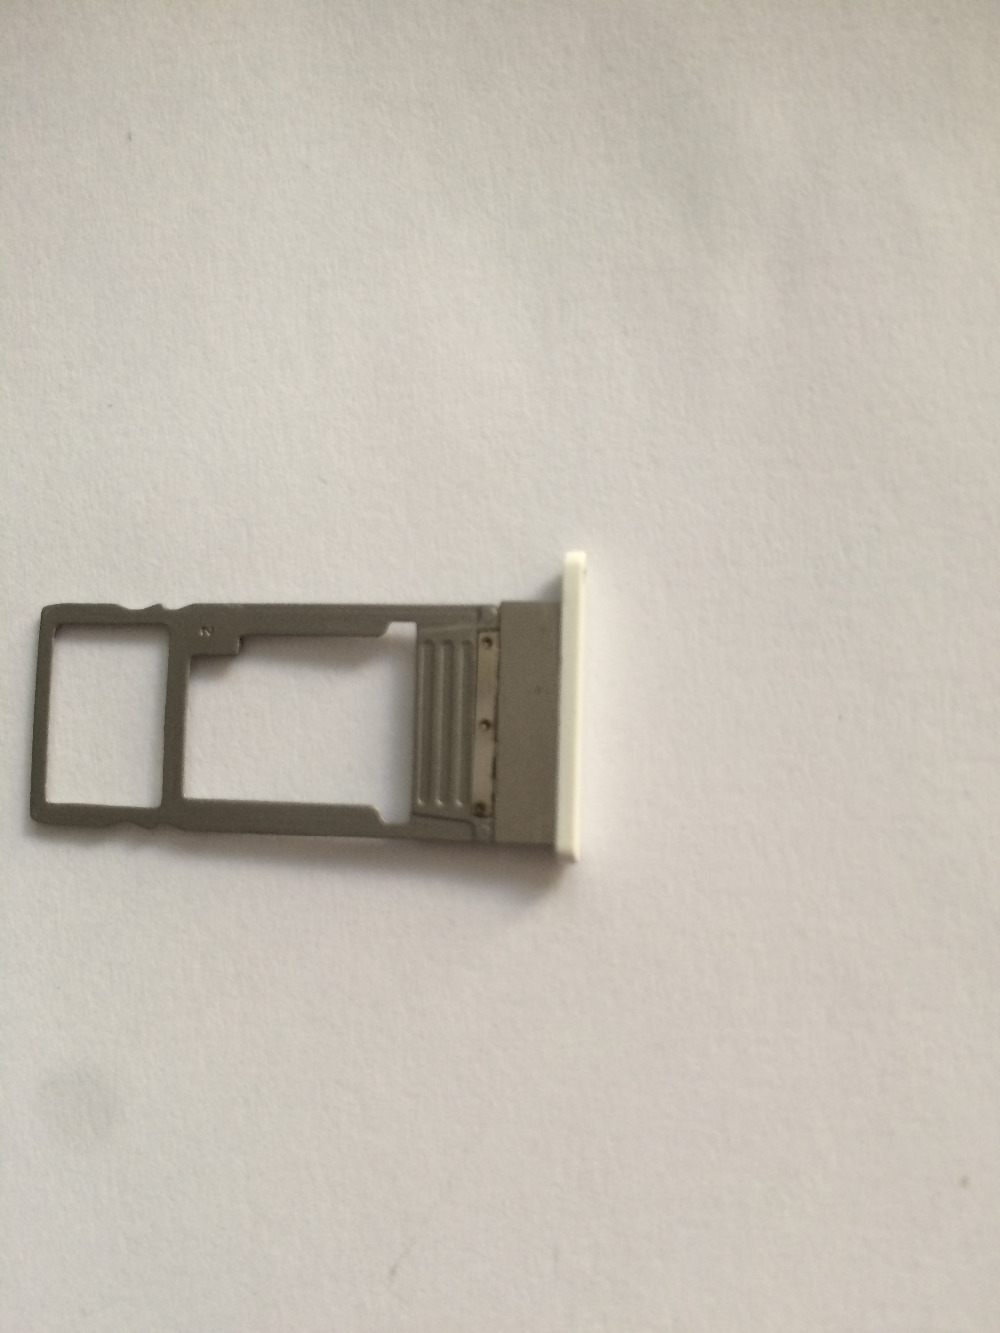 Used Sim Card Holder Tray Card Slot Button For Ulefone Vienna MTK6753 Octa Core 4G 5.5 FHD 1920x1080 Free Shipping